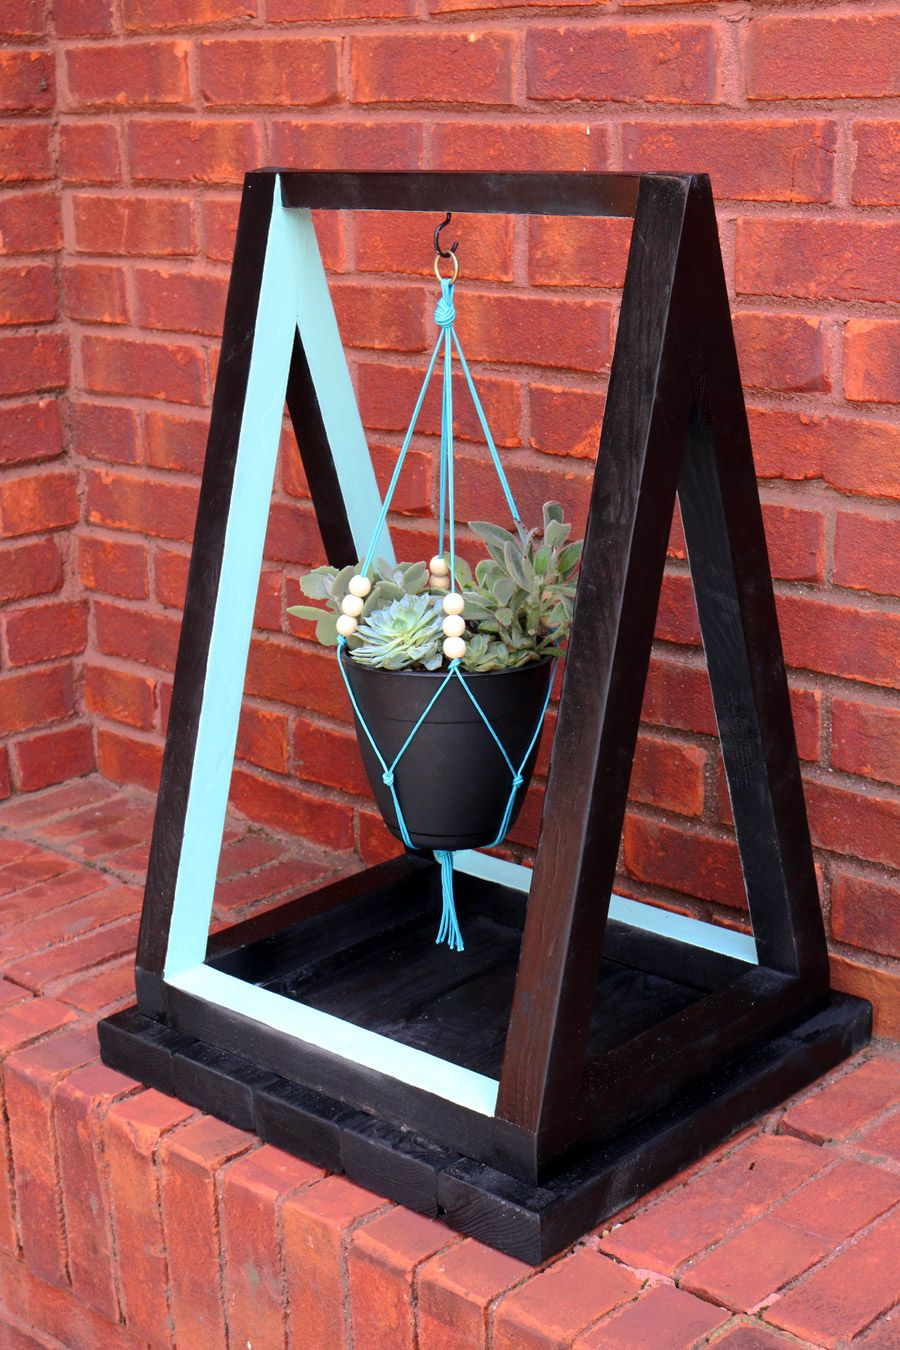 How To Build A Hanging Planter With The Home Depot